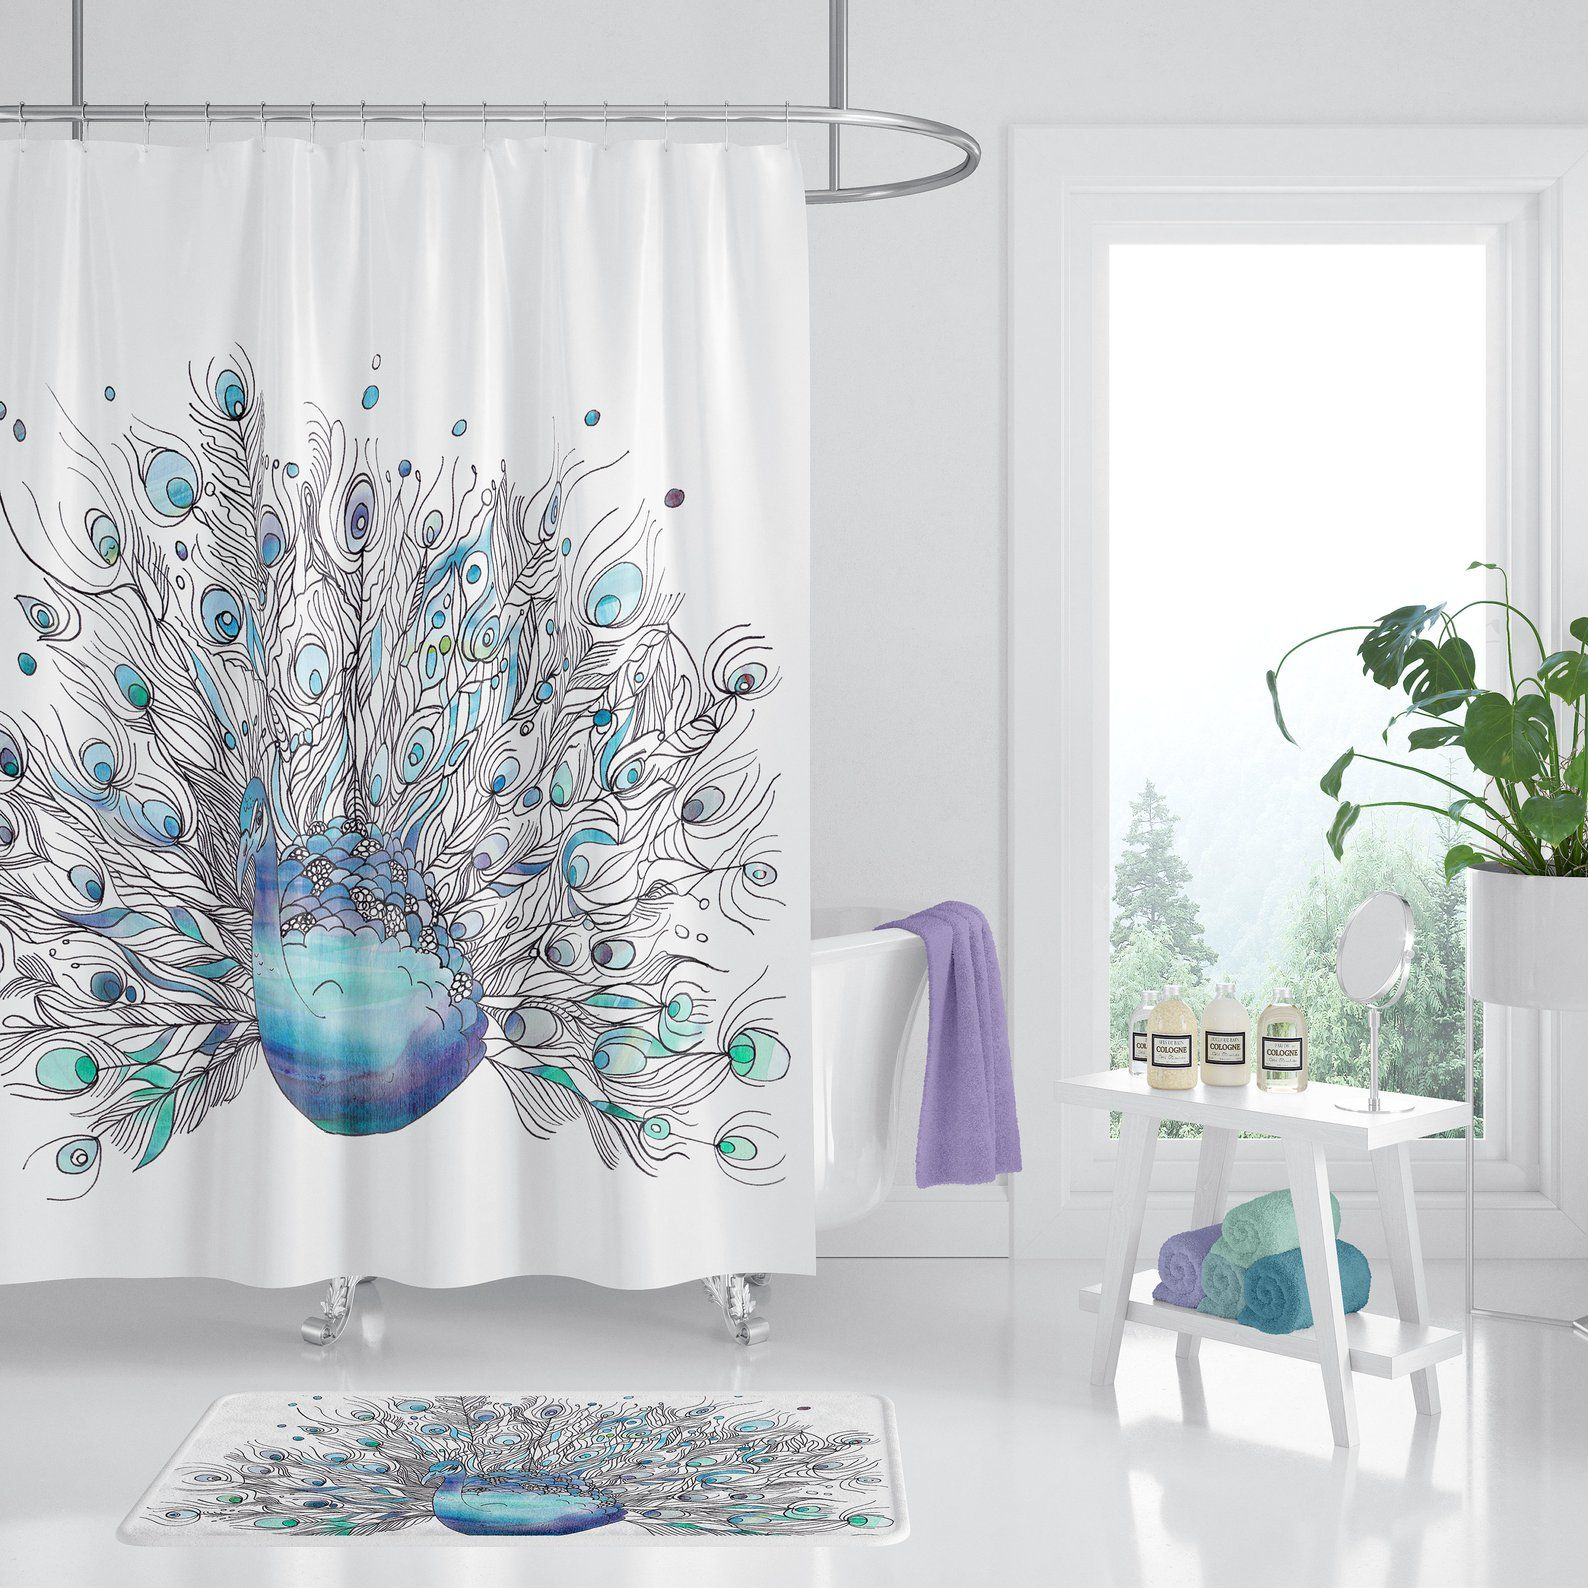 Peacock Shower Curtain Peacock Watercolor Art Blue Etsy Blue Shower Curtains Peacock Shower Curtain Pretty Shower Curtains